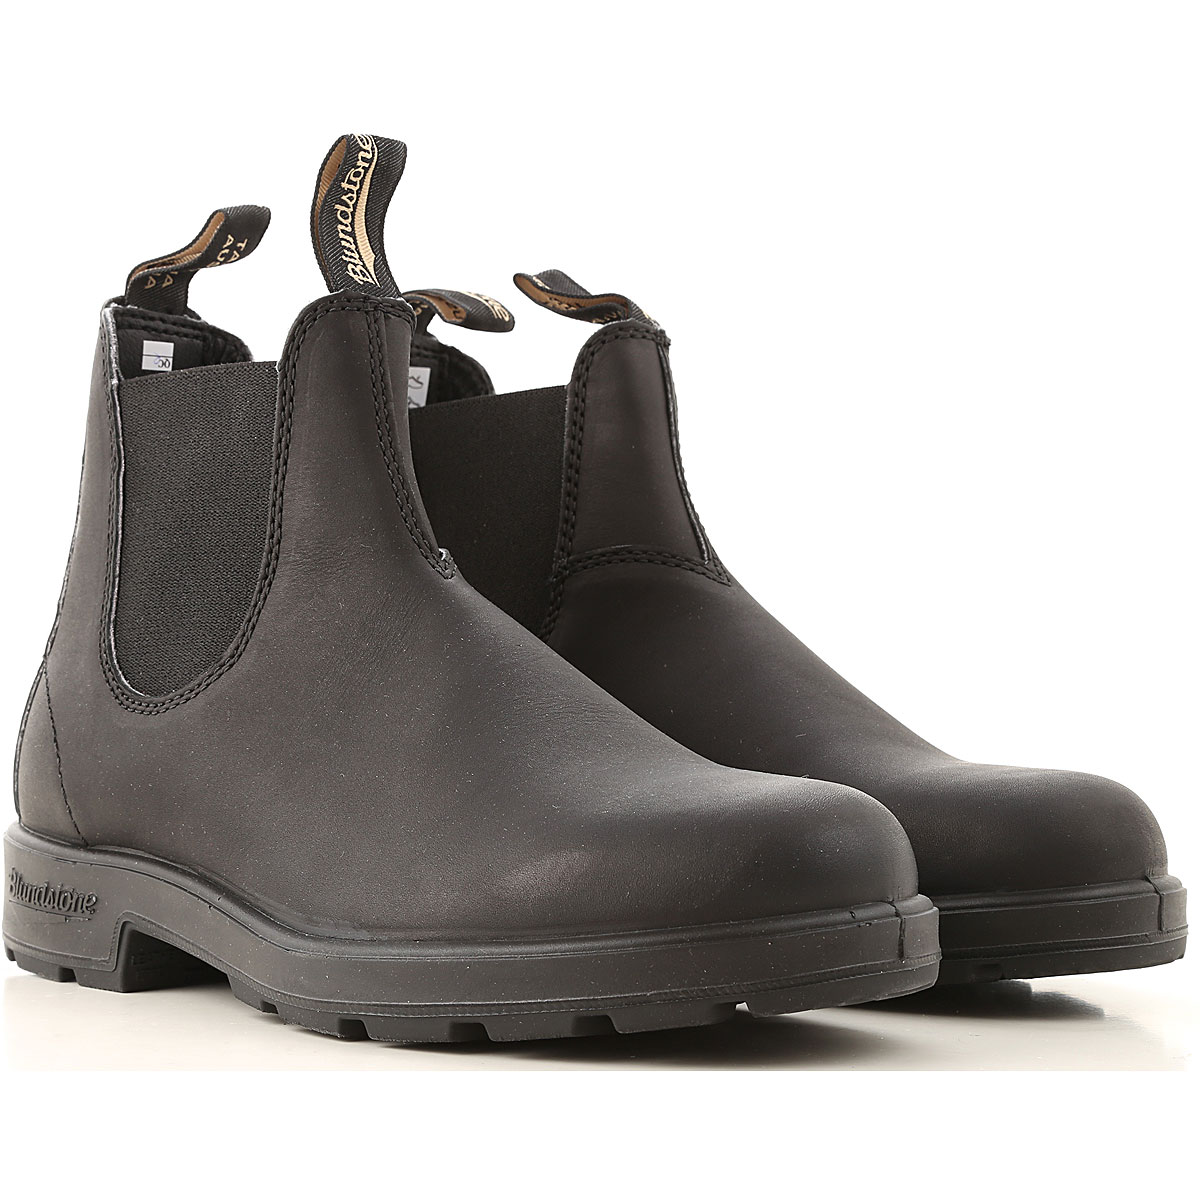 Blundstone Chelsea Boots for Men On Sale, Black, Leather, 2019, 10.5 11.5 9.5